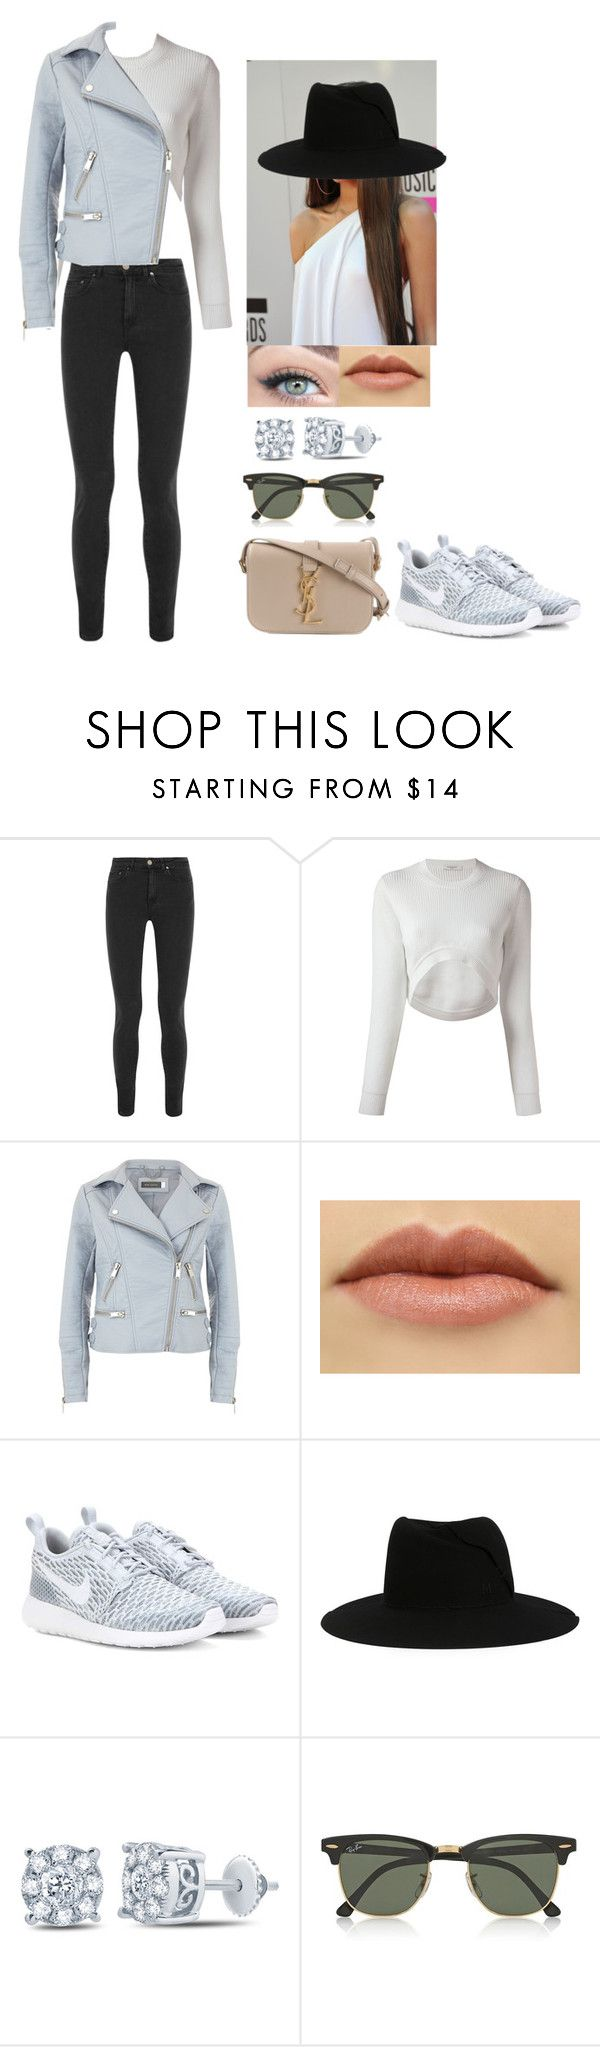 """""""Candids"""" by teaand-kisses ❤ liked on Polyvore featuring Acne Studios, Givenchy, Mint Velvet, NIKE, Coleman, Maison Michel, Ray-Ban, Yves Saint Laurent, women's clothing and women"""